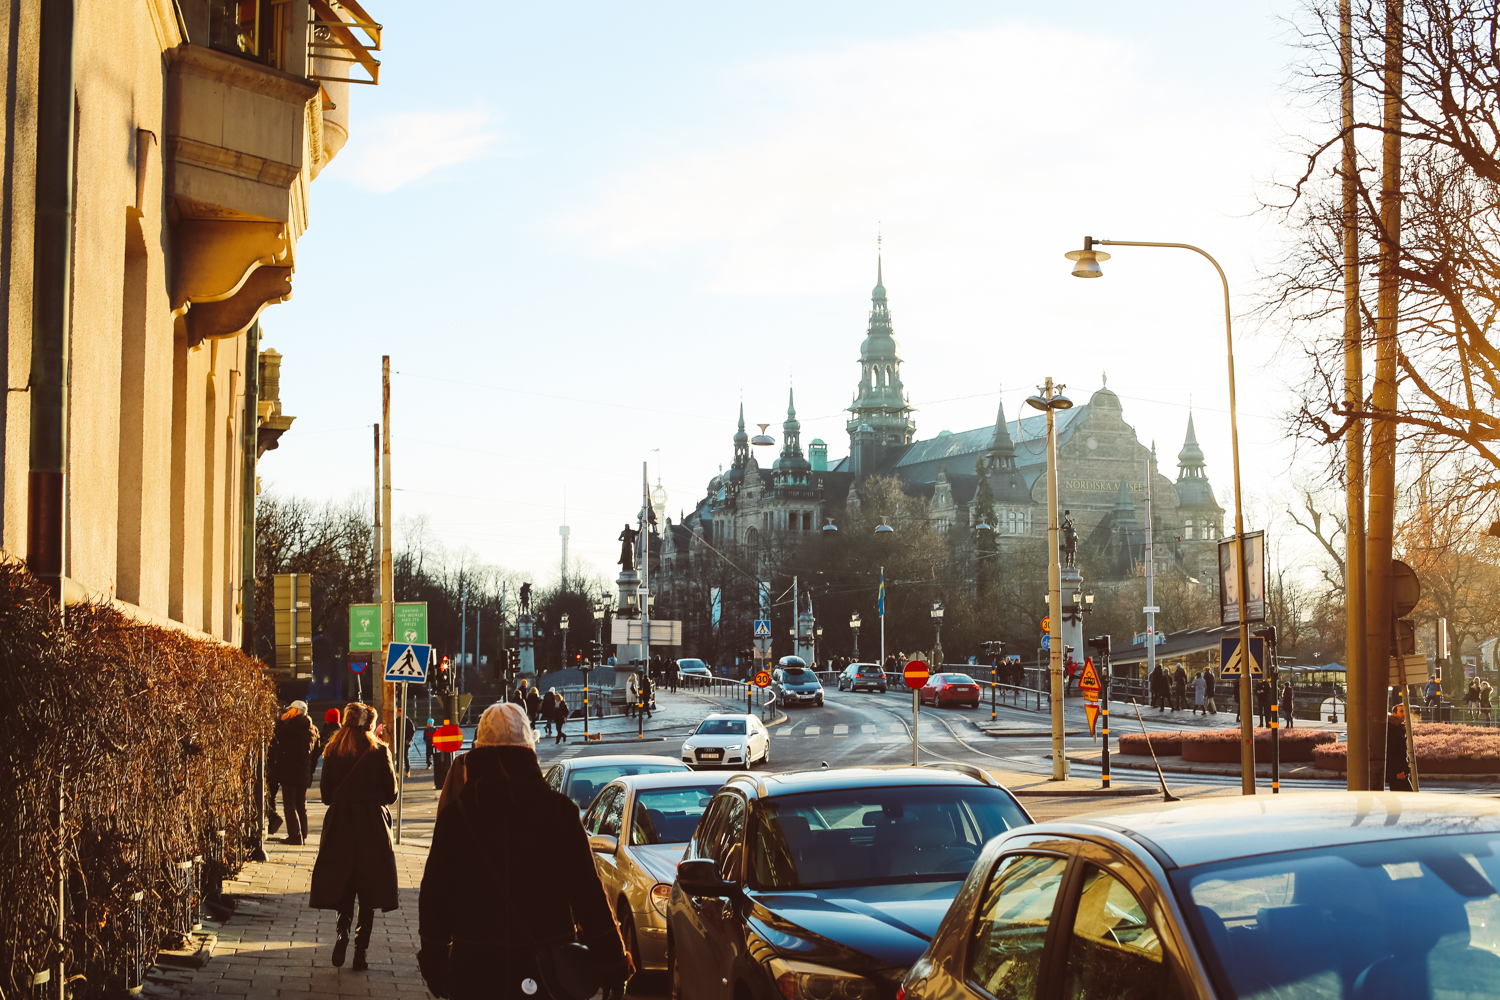 Walking to the Vasa Museum on a sunny day in Stockholm